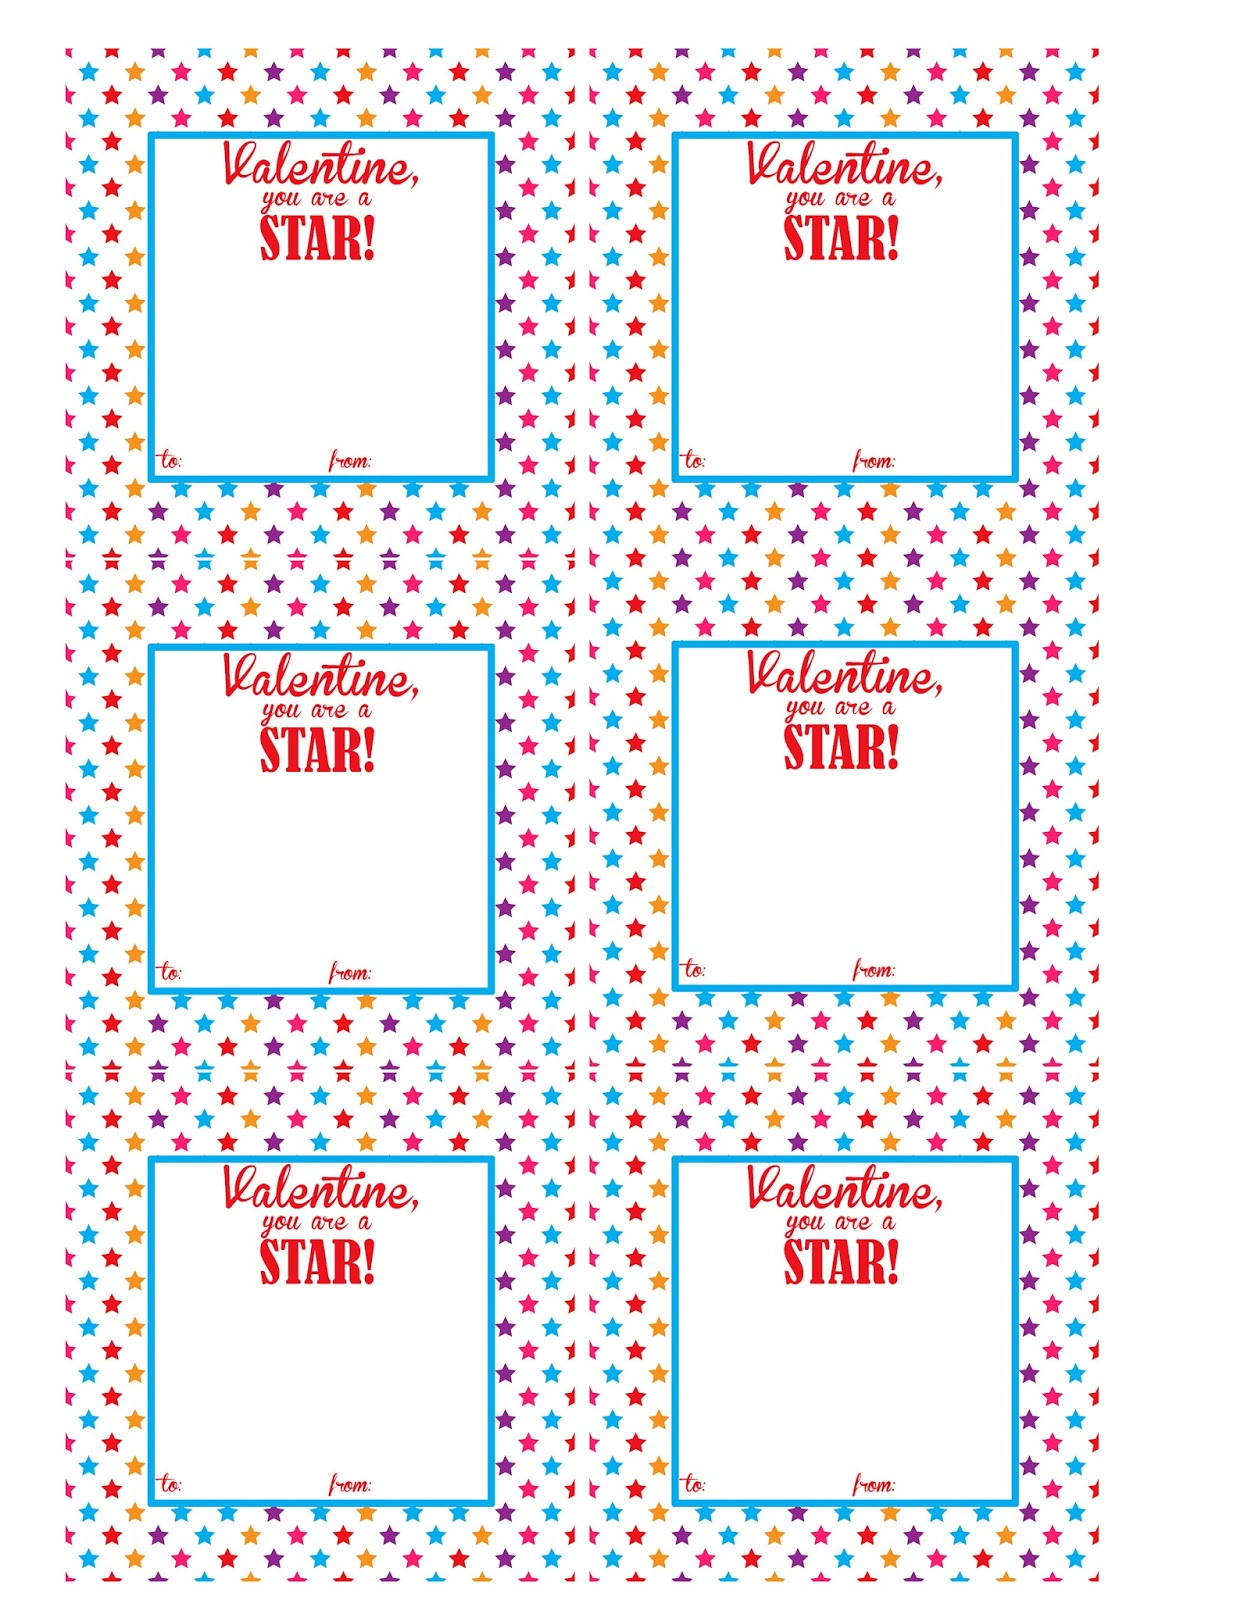 The Larson Lingo Starburst Valentine Ideas Free Printable